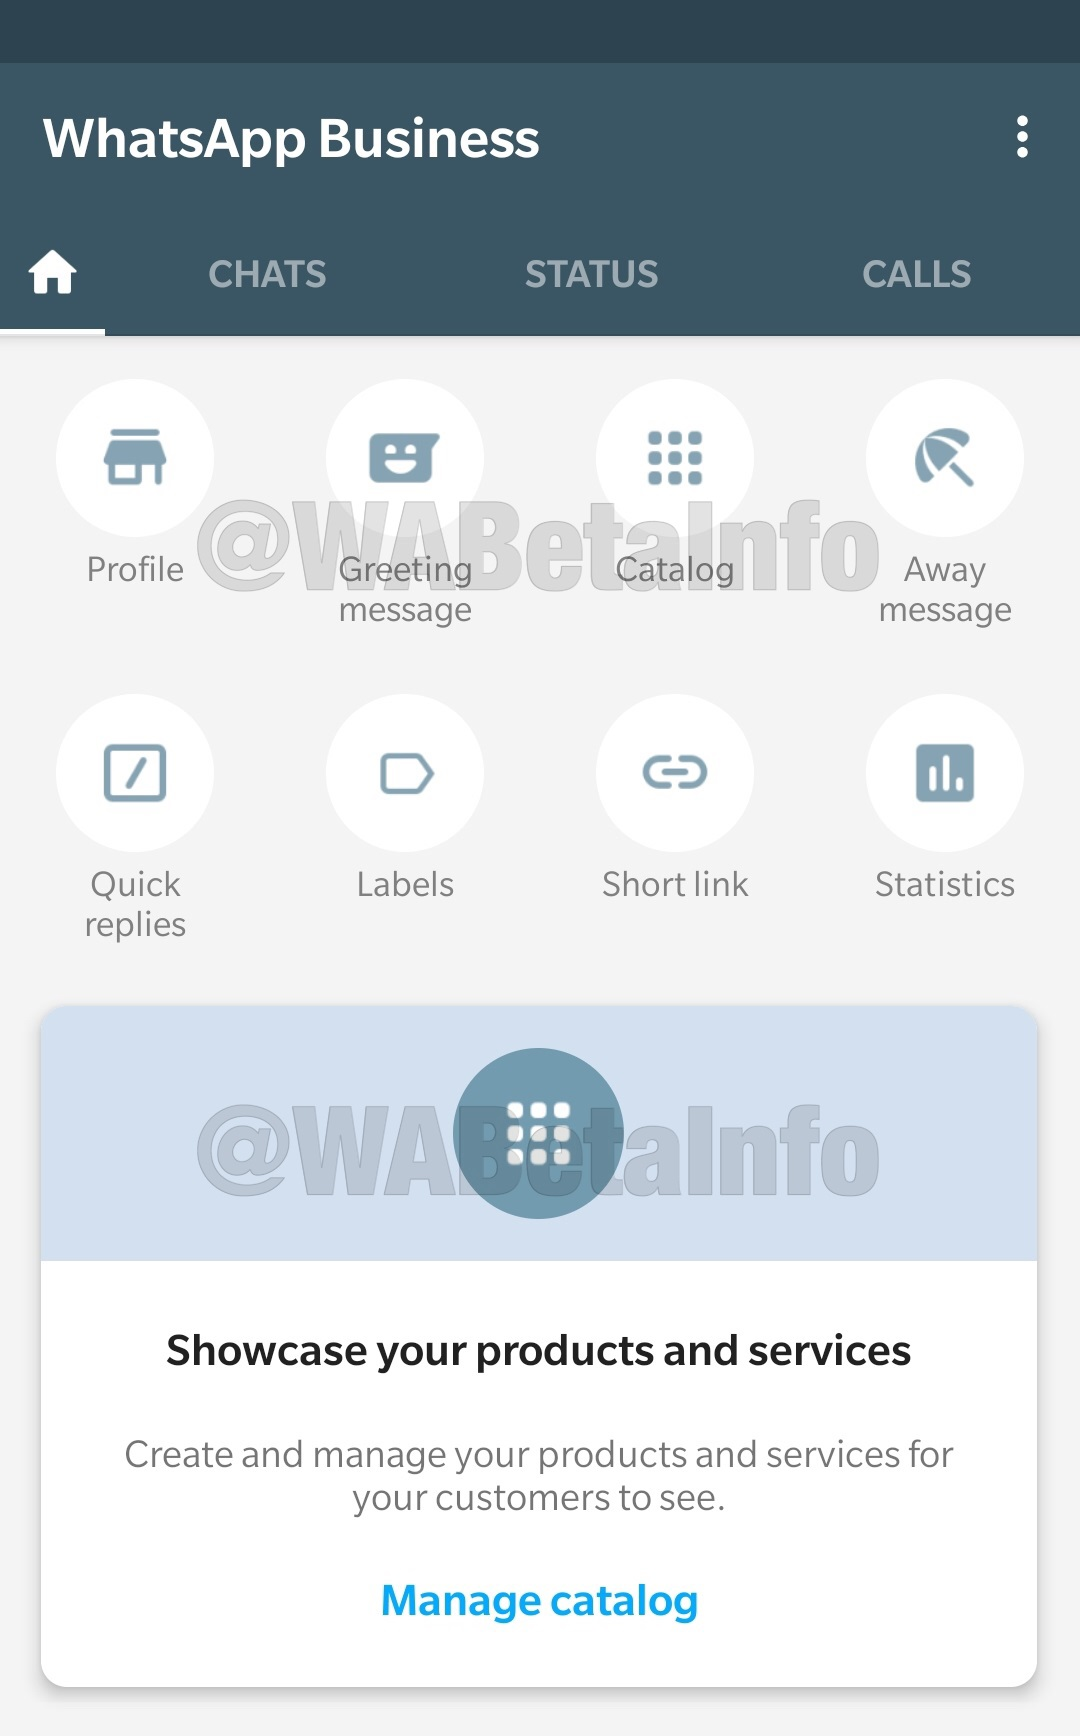 Whatsapp Business Beta For Android 2 19 131 What S New Wabetainfo